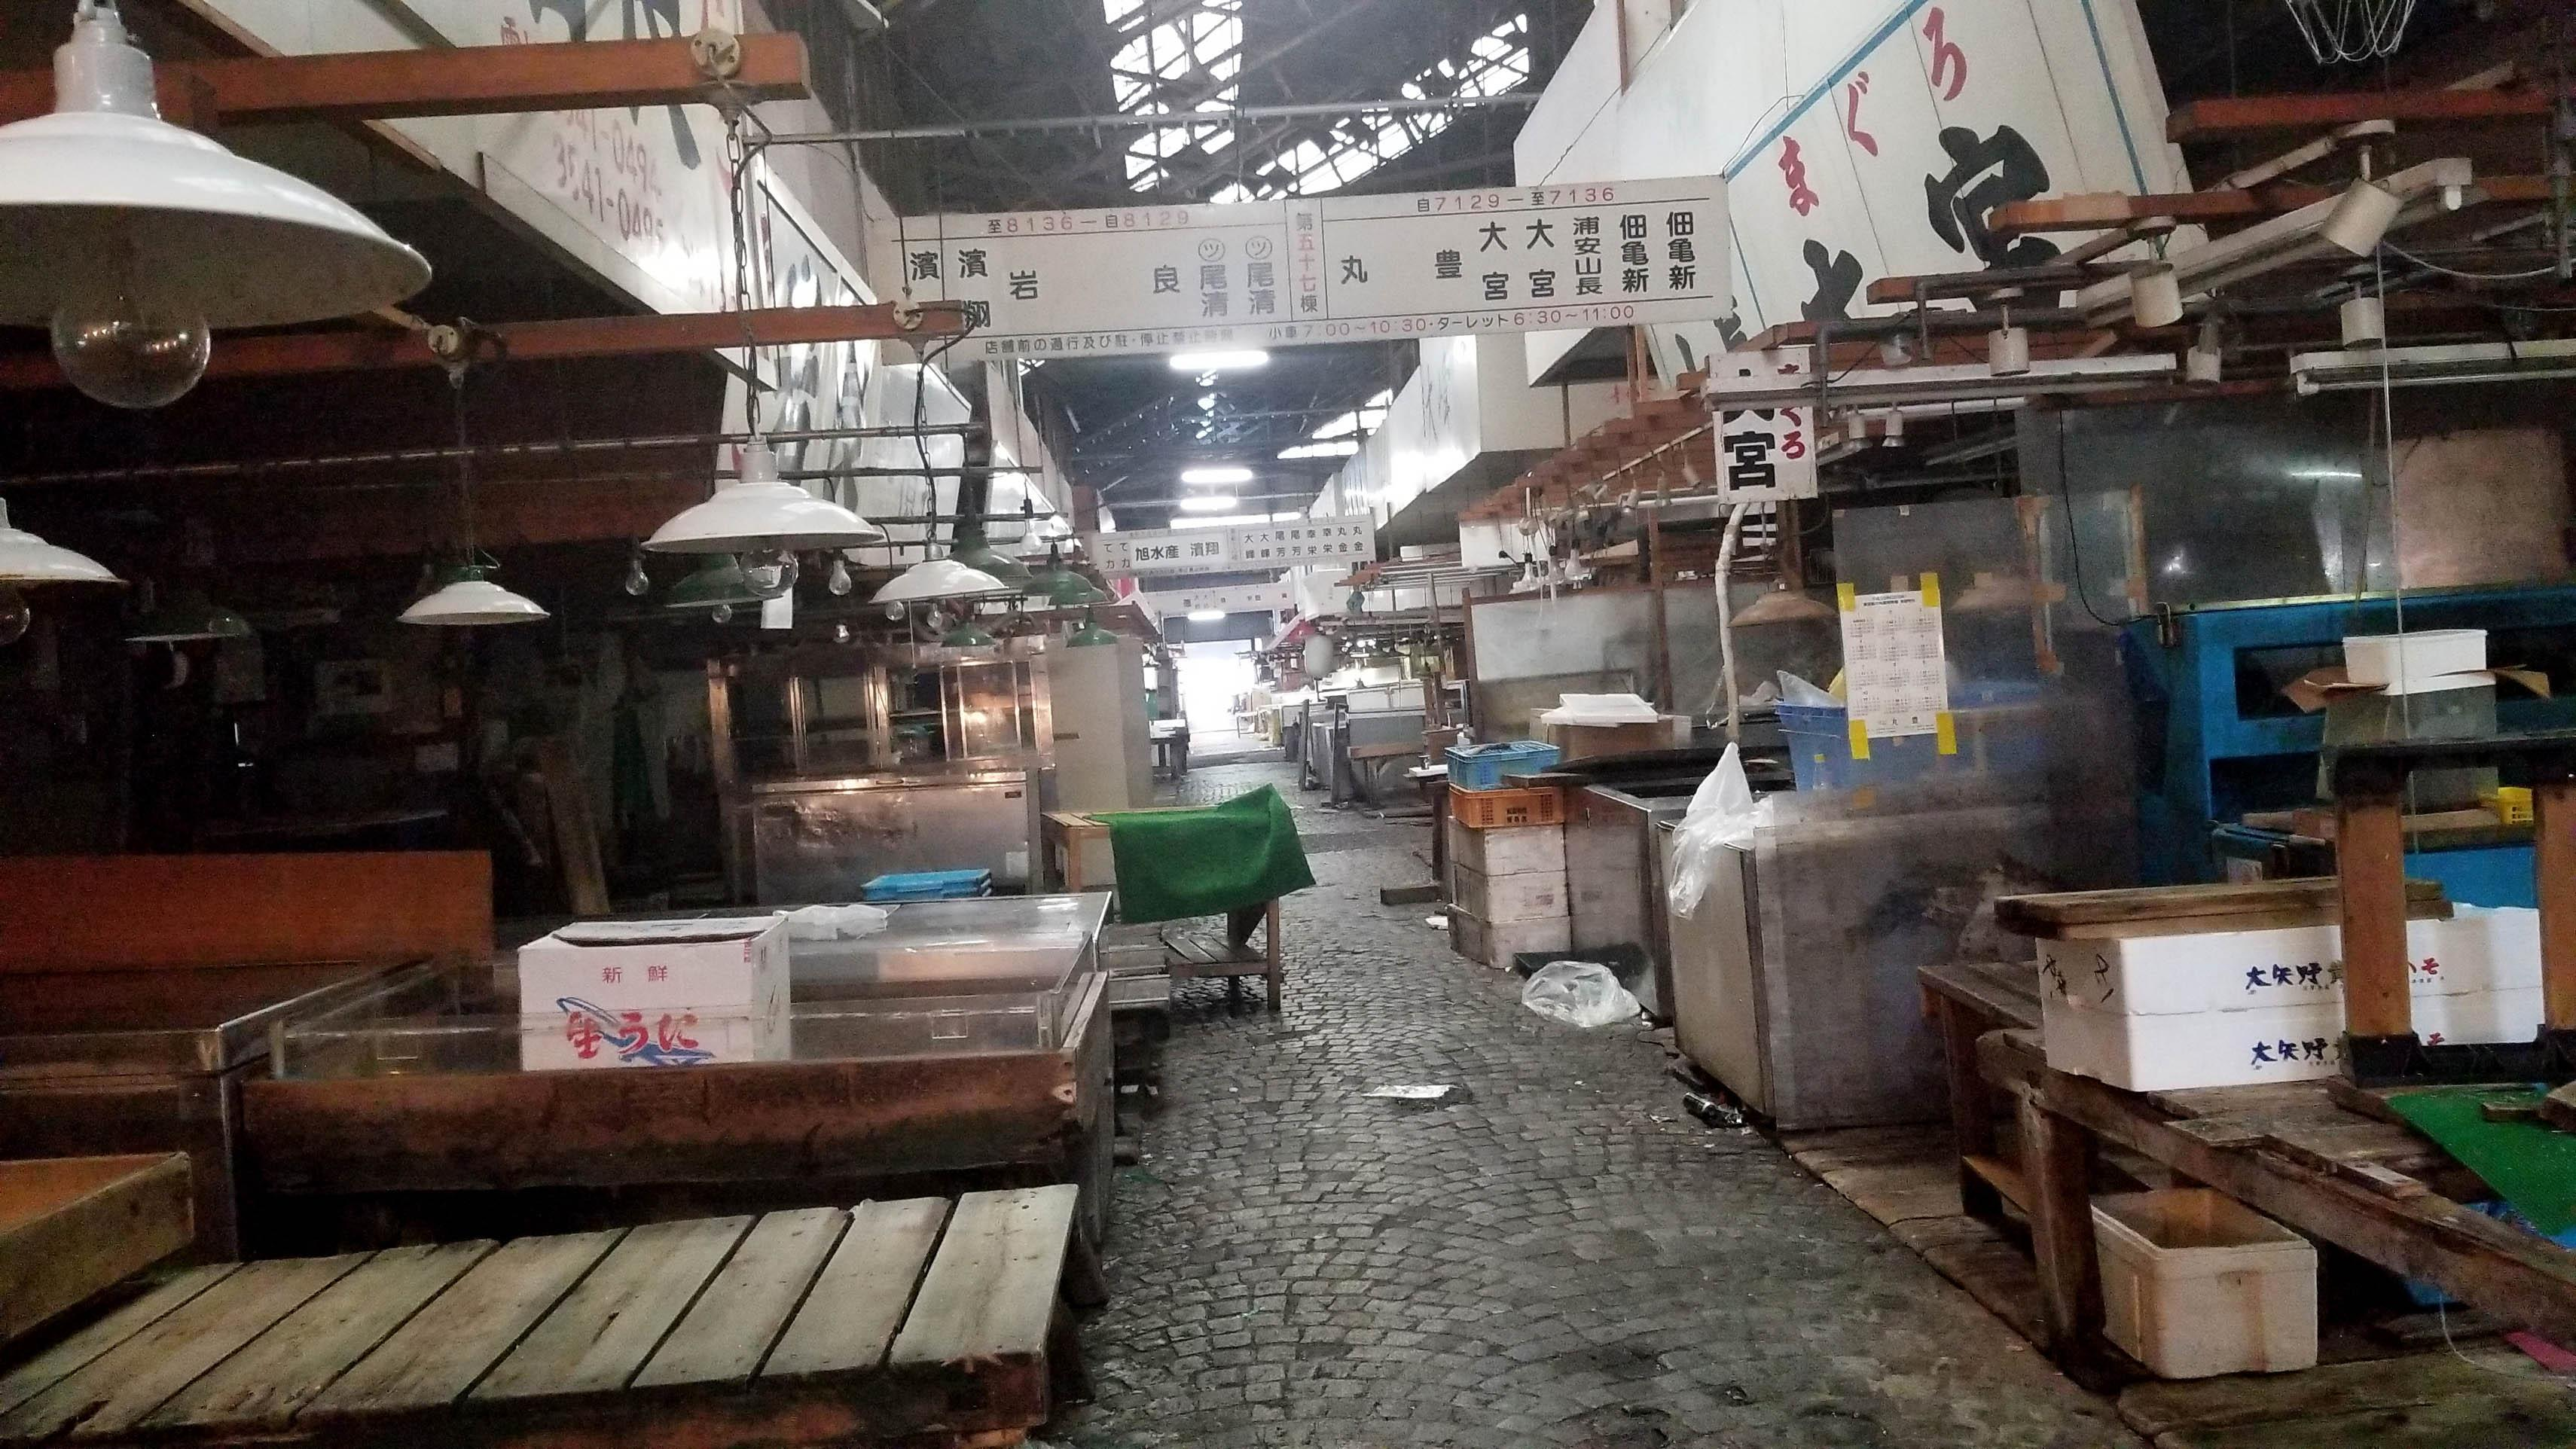 Ghosts of Tsukiji: After 83 years, world's top fish market